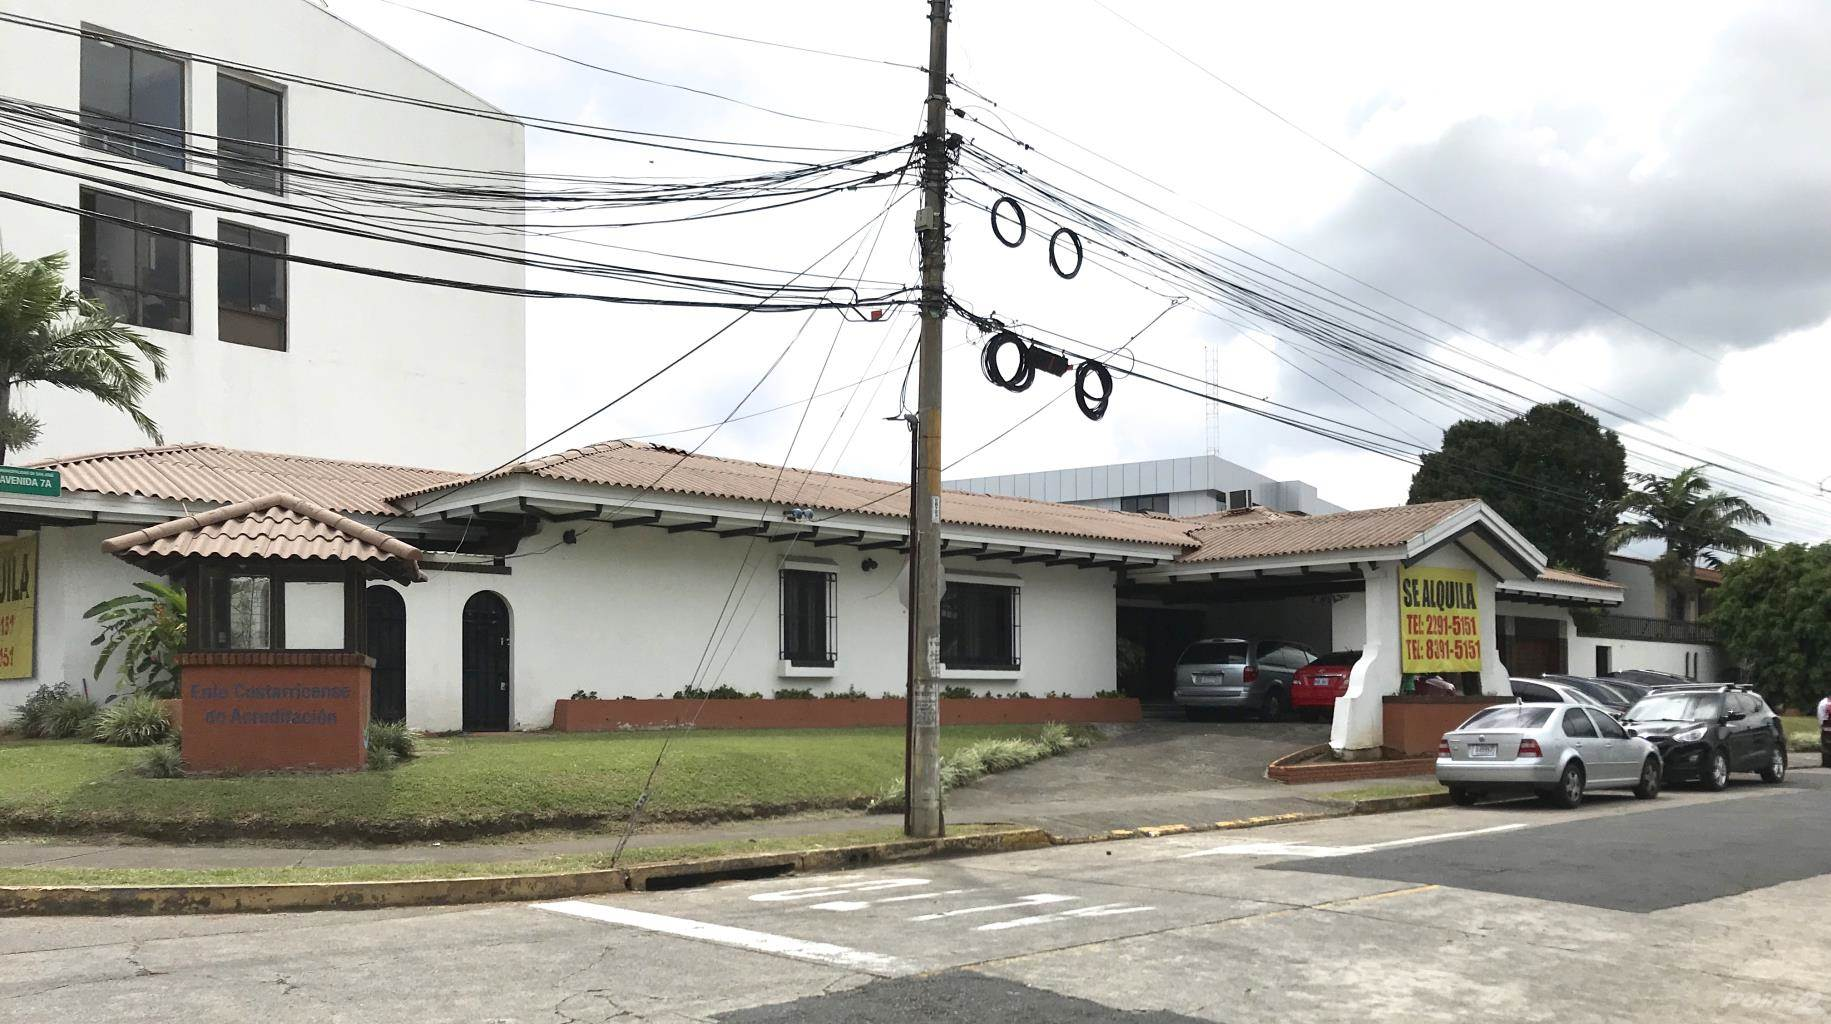 Commercial for lease in ROHRMOSER SAN JOSÉ, Rohrmoser, San José   , Costa Rica